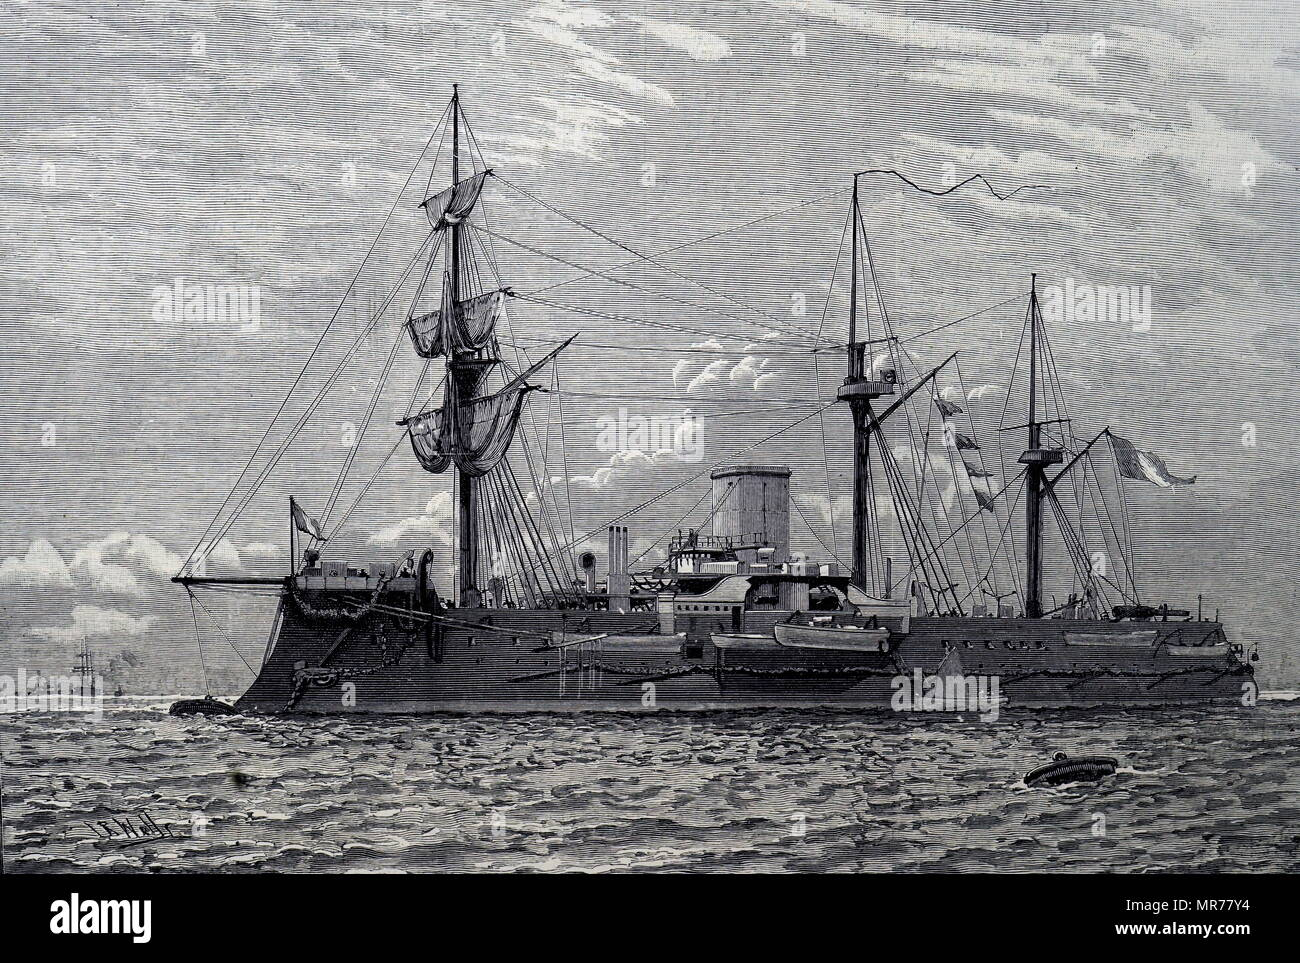 The Redoubtable; French naval ironclad warship. Illustration 1889 - Stock Image